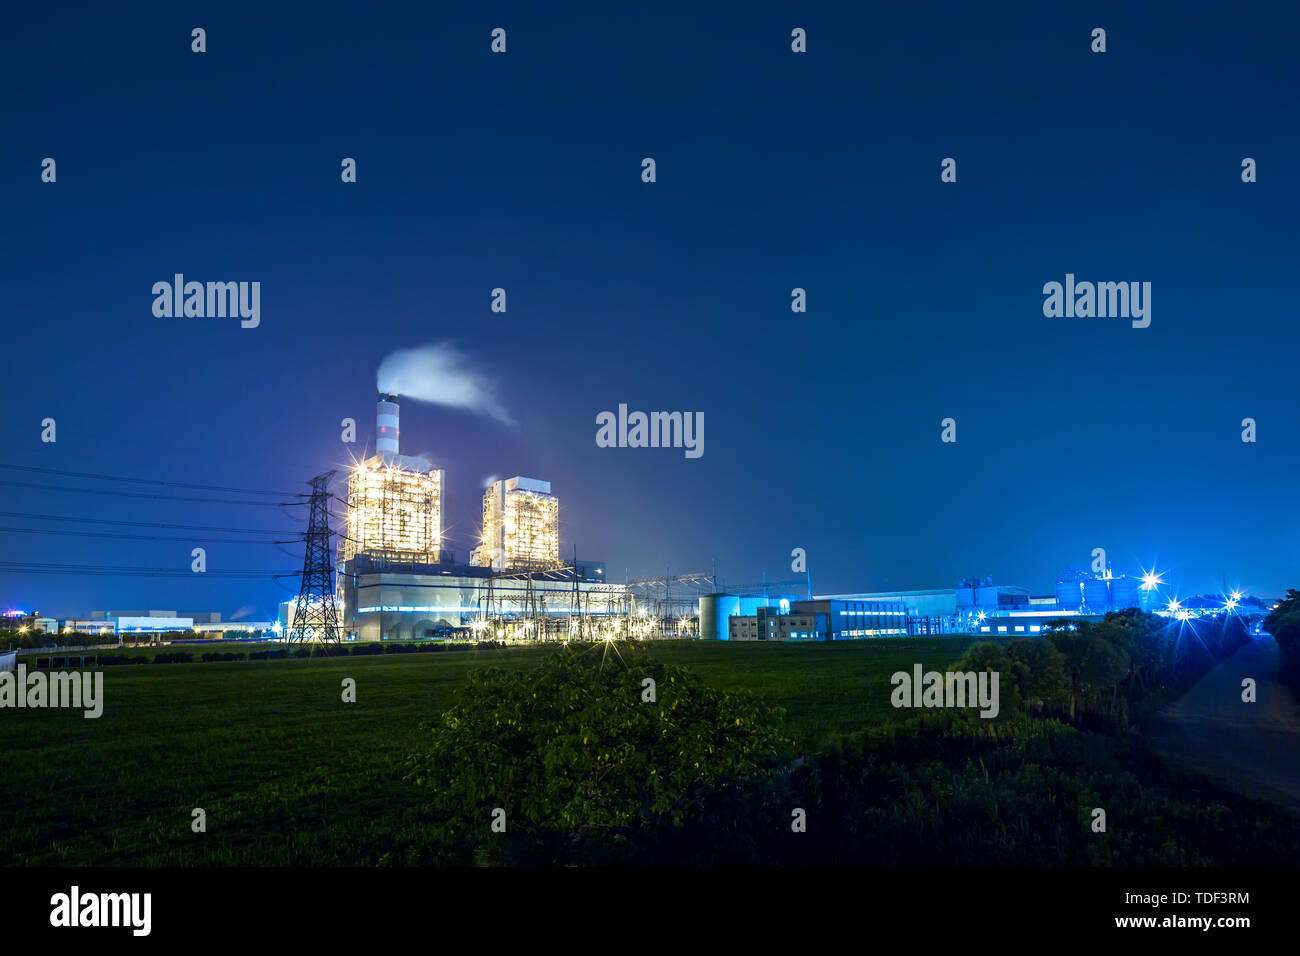 thermal power station near a high way road at nignt - Stock Image